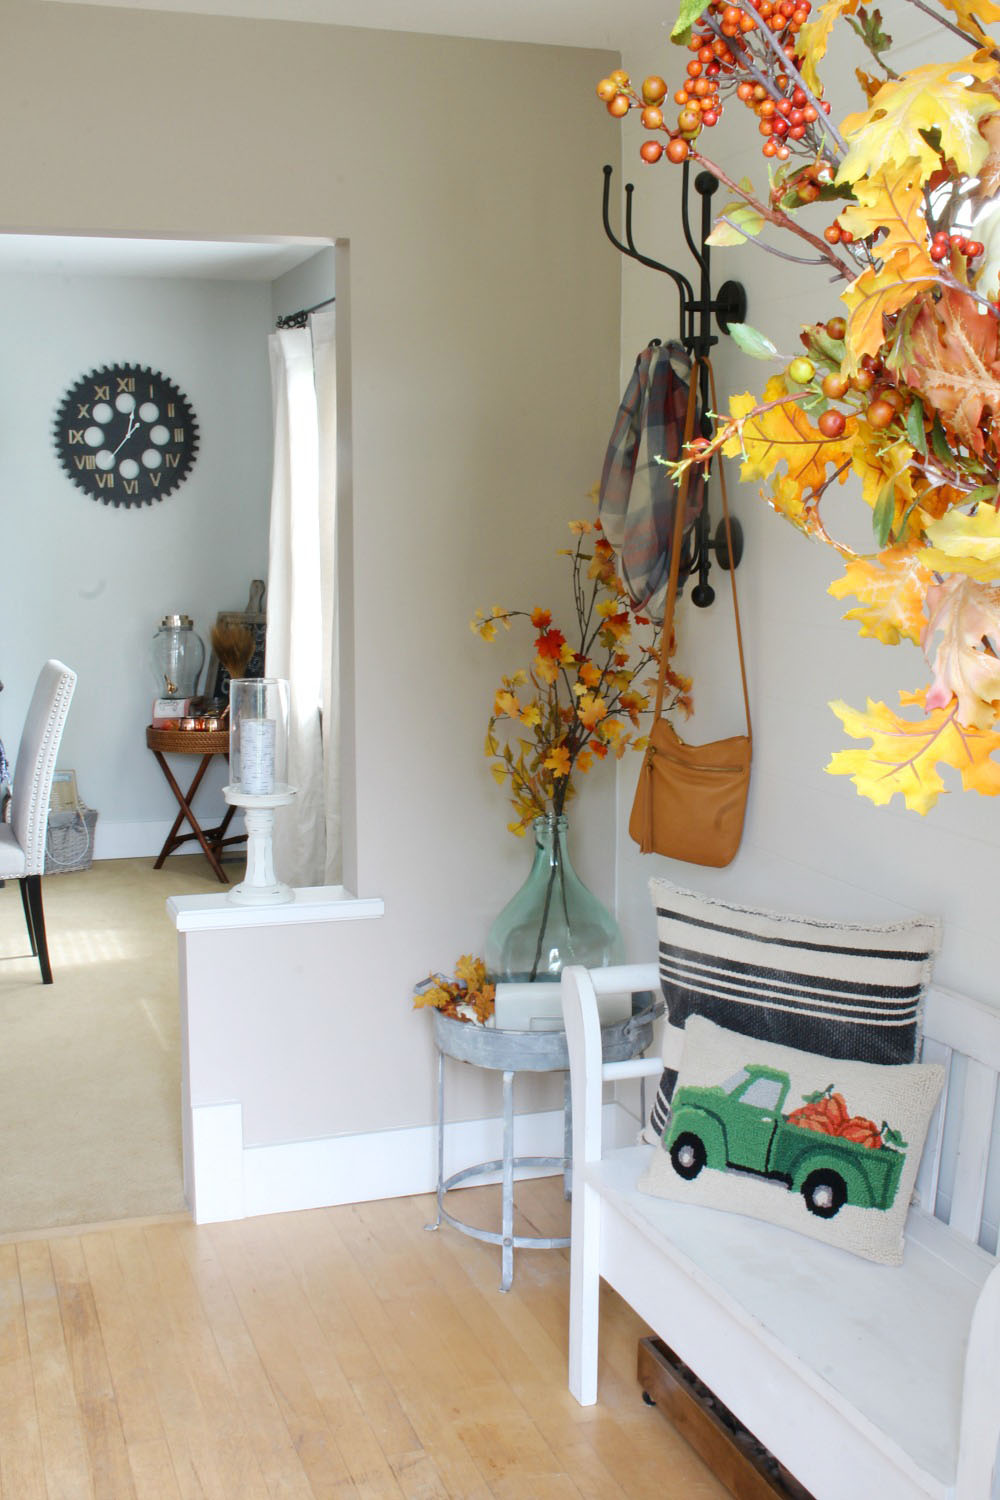 Fall front entry decorating ideas. Create a welcome entry for family and friends with these simple ideas to dress up your front entry for fall.